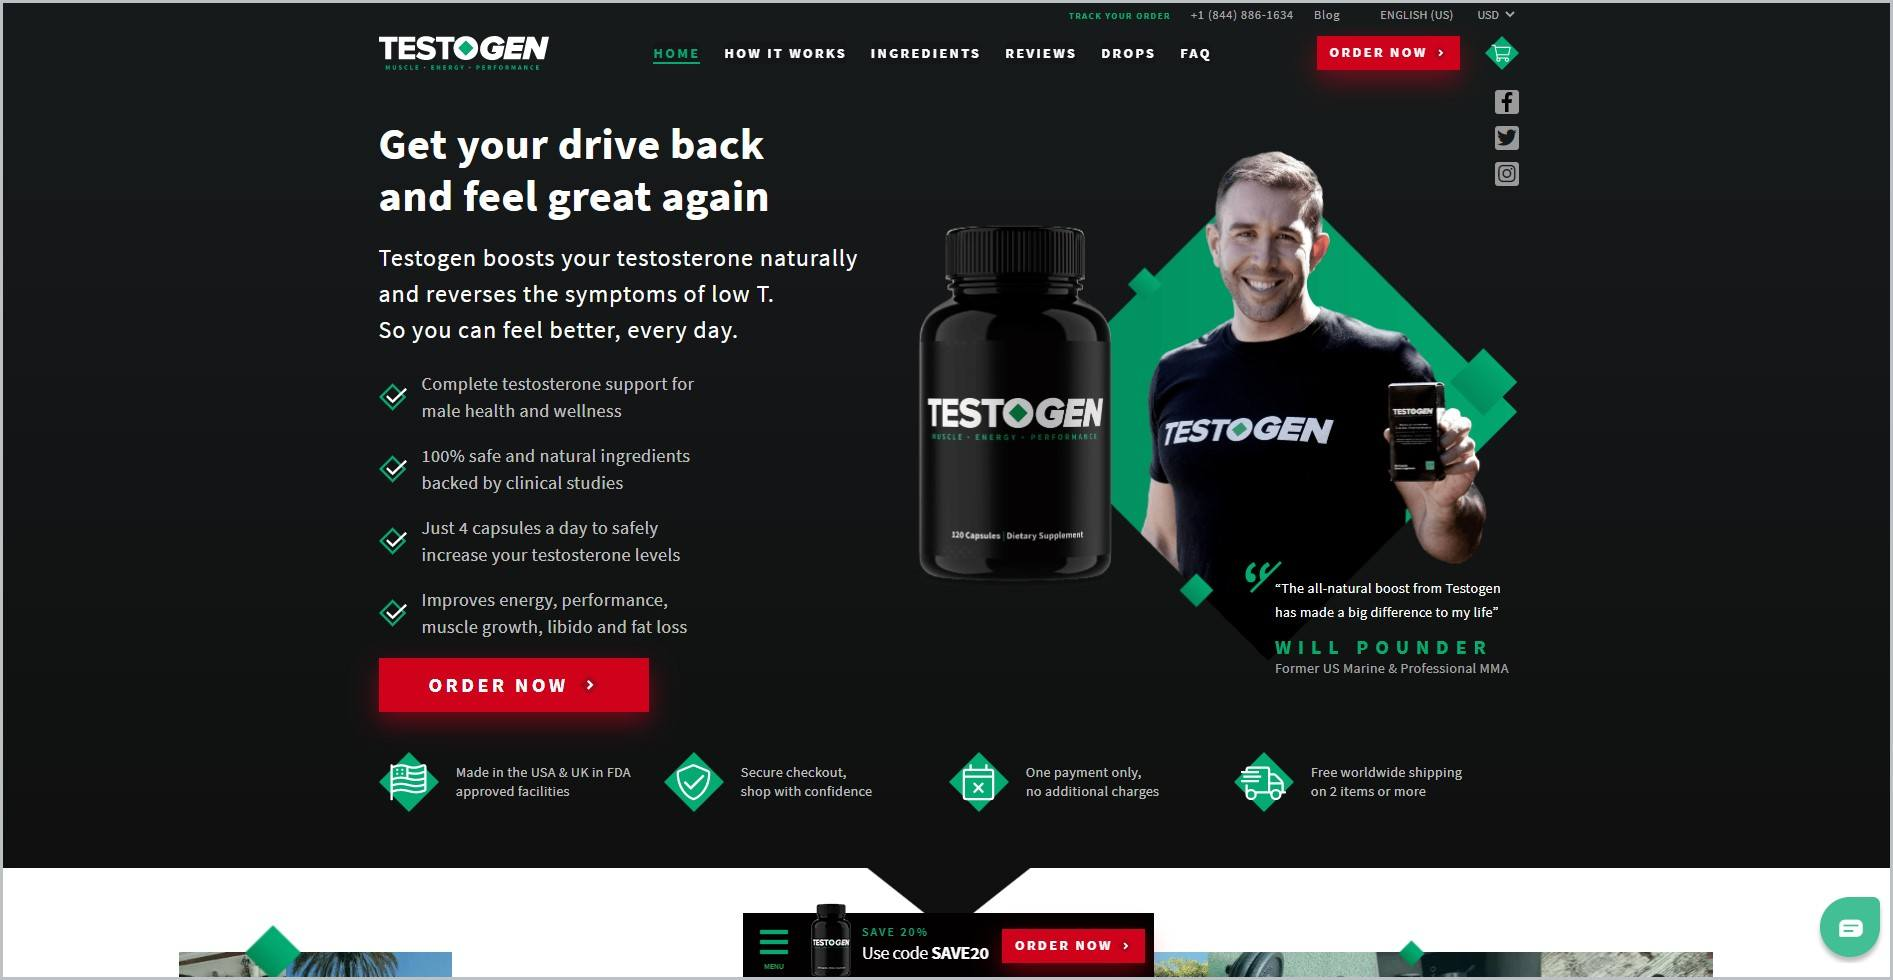 screenshot of Testogen homepage with black header with the website's name and main navigation menu